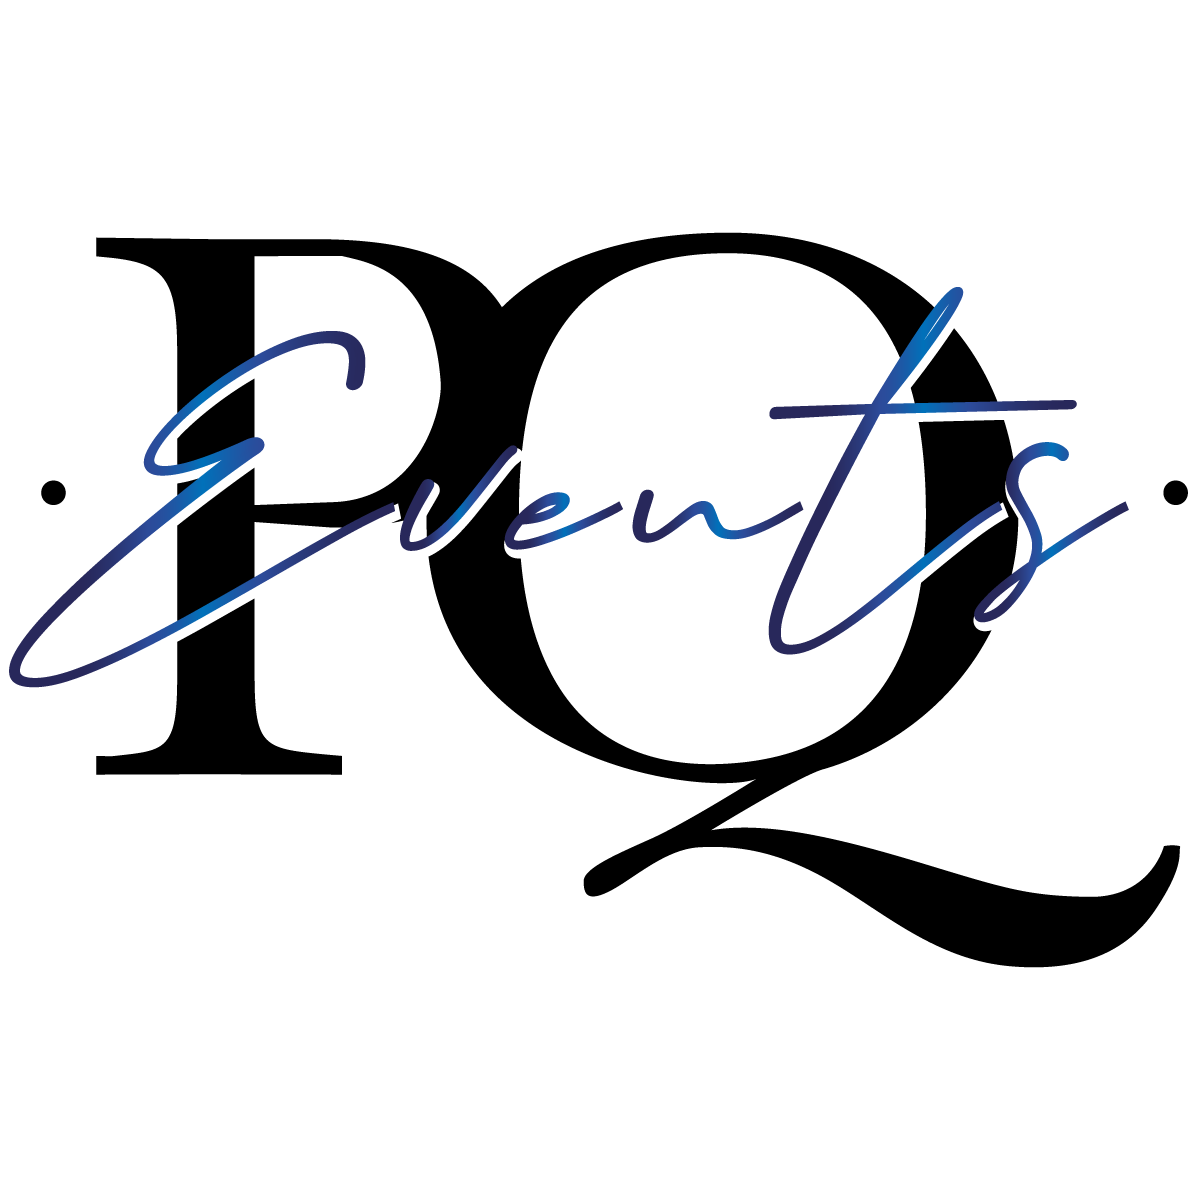 Premium Quality Events